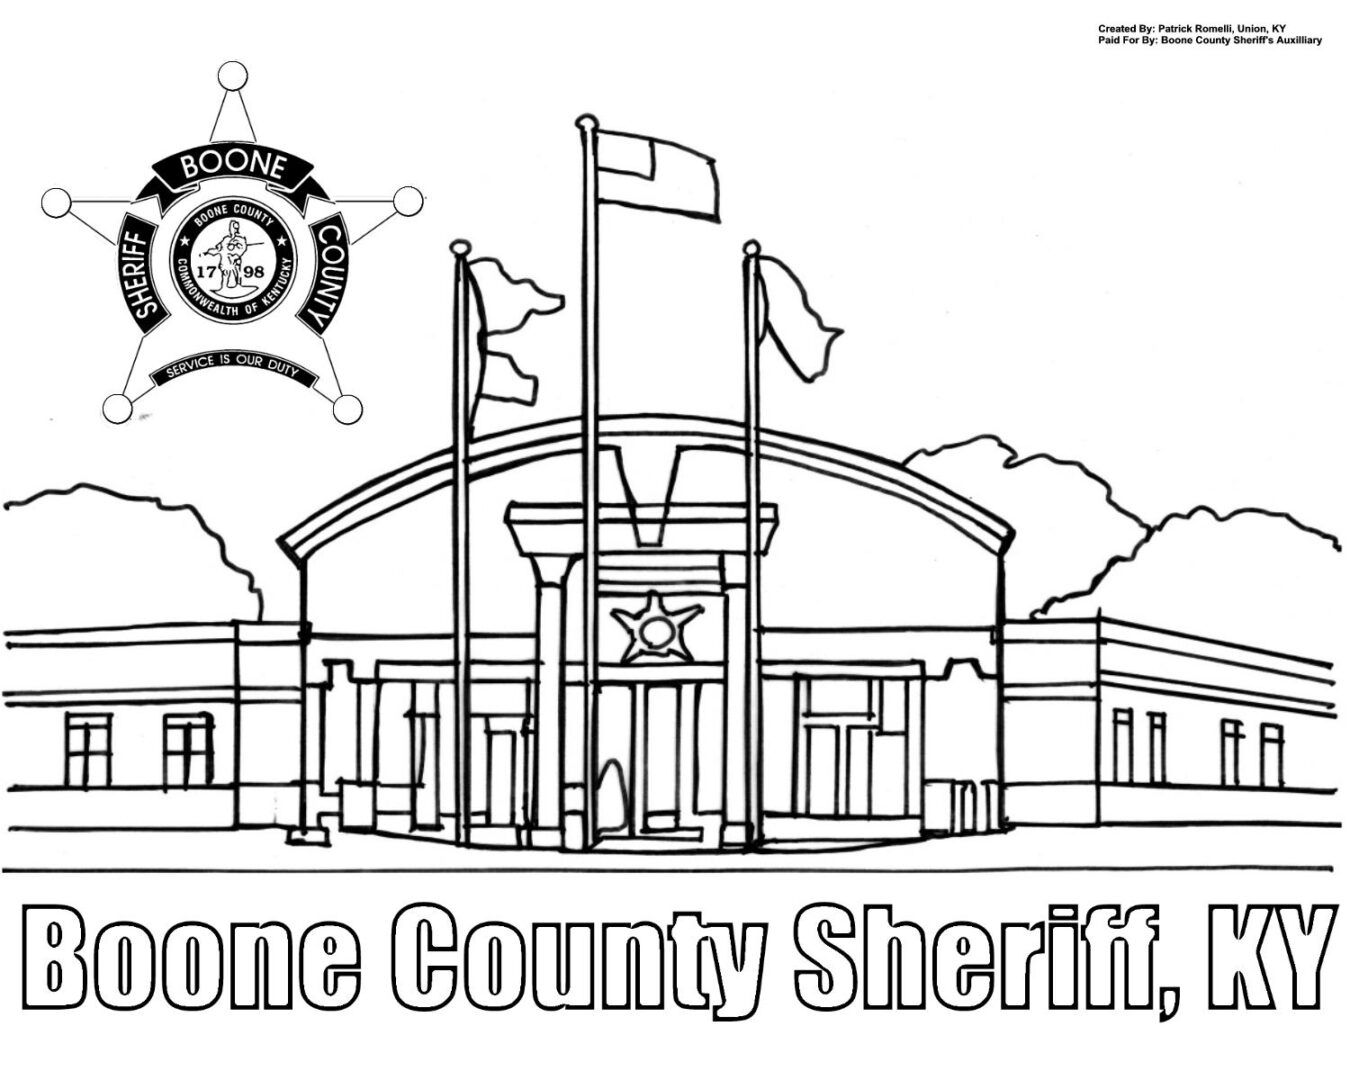 Boone County Sheriff